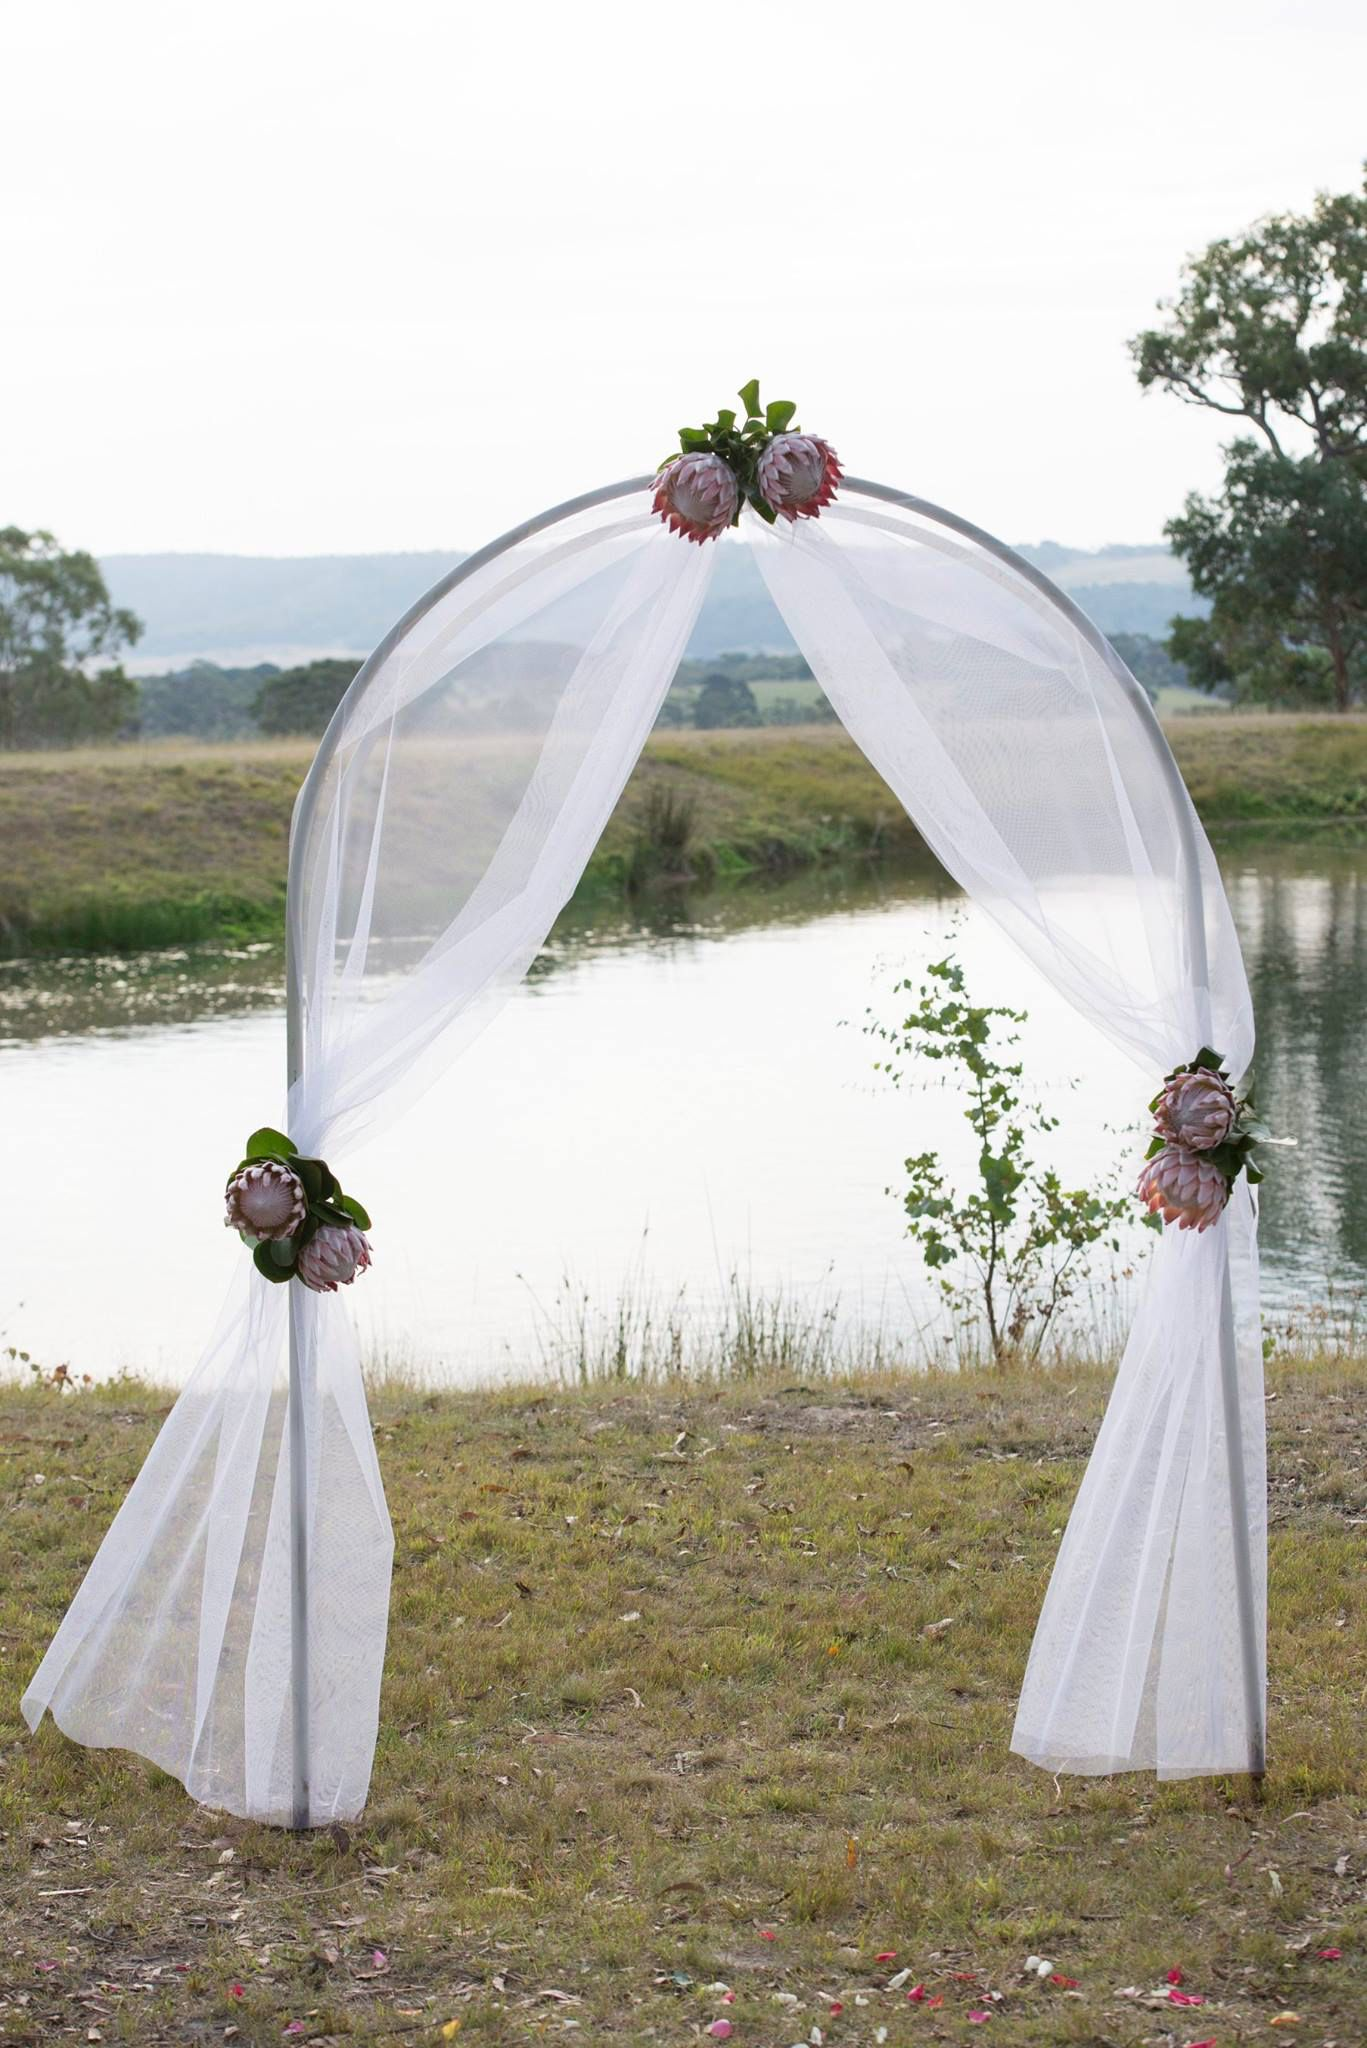 Gorgeous ceremony arch decorated with tulle and king proteas gorgeous ceremony arch decorated with tulle and king proteas weddings at peninsula wild flower junglespirit Image collections